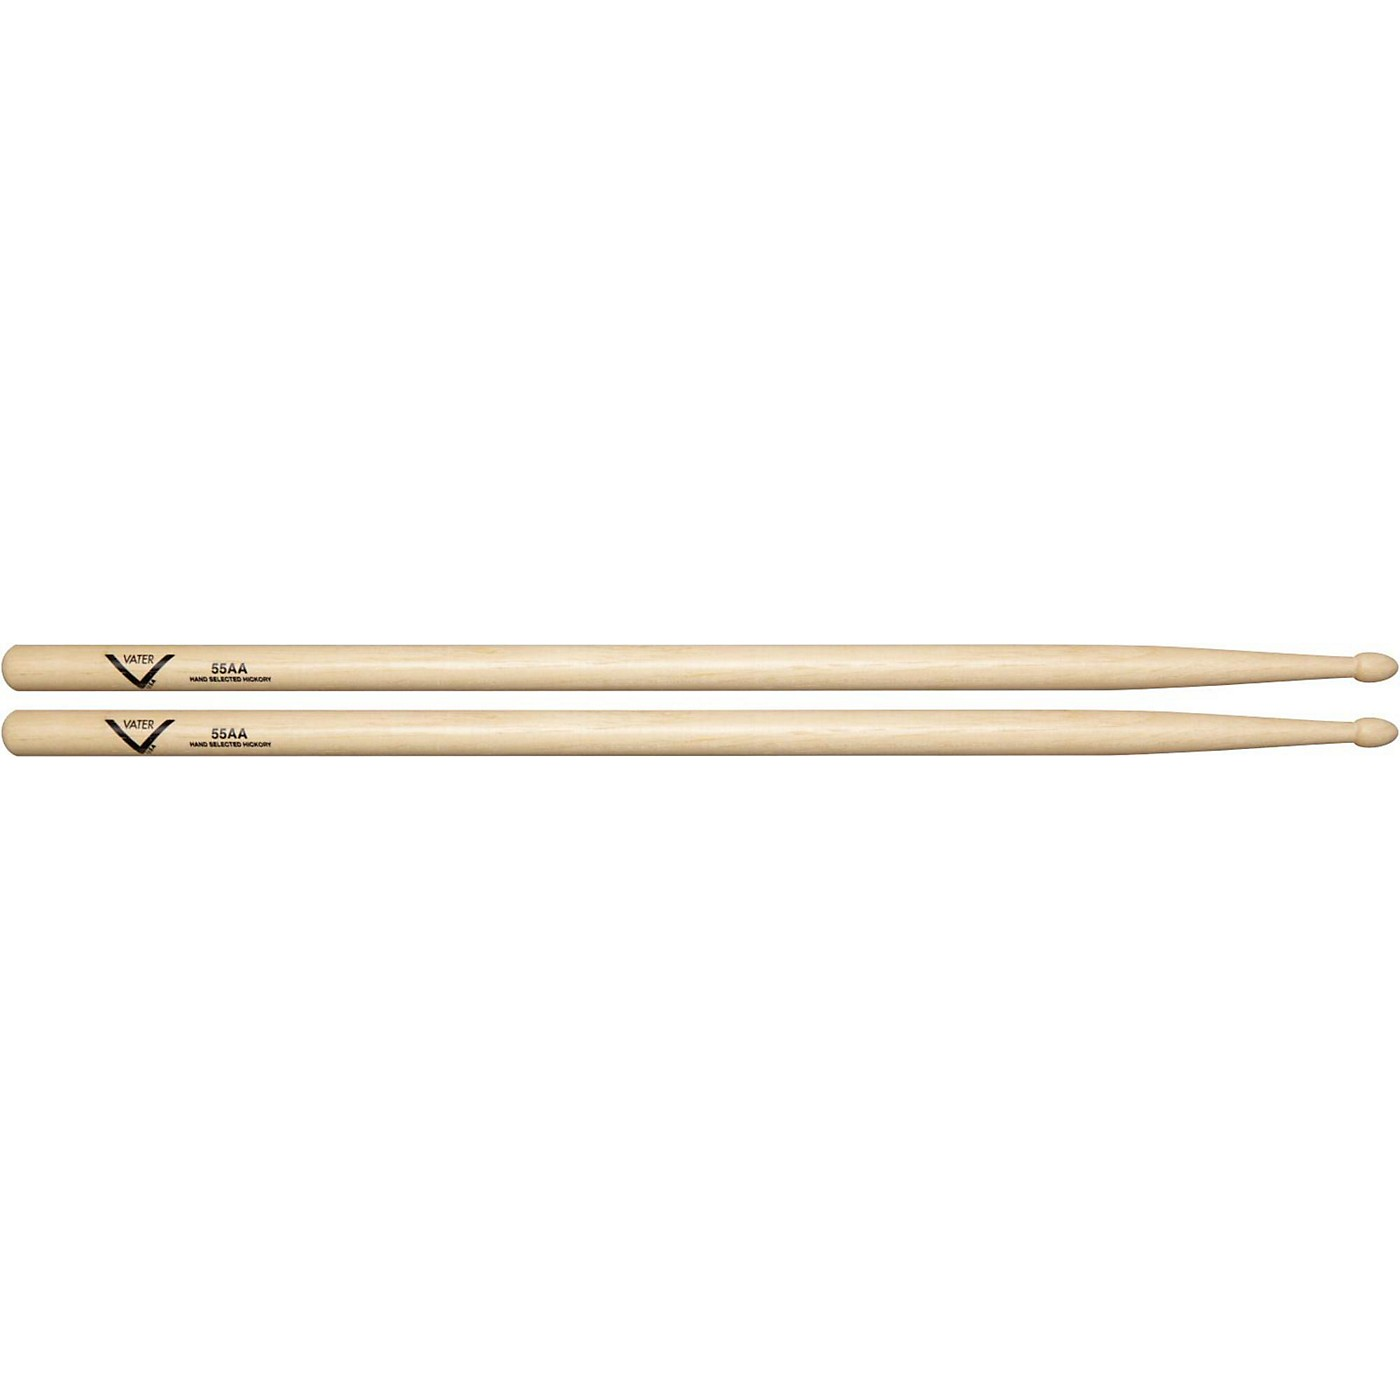 Vater American Hickory 55AA Drumsticks thumbnail